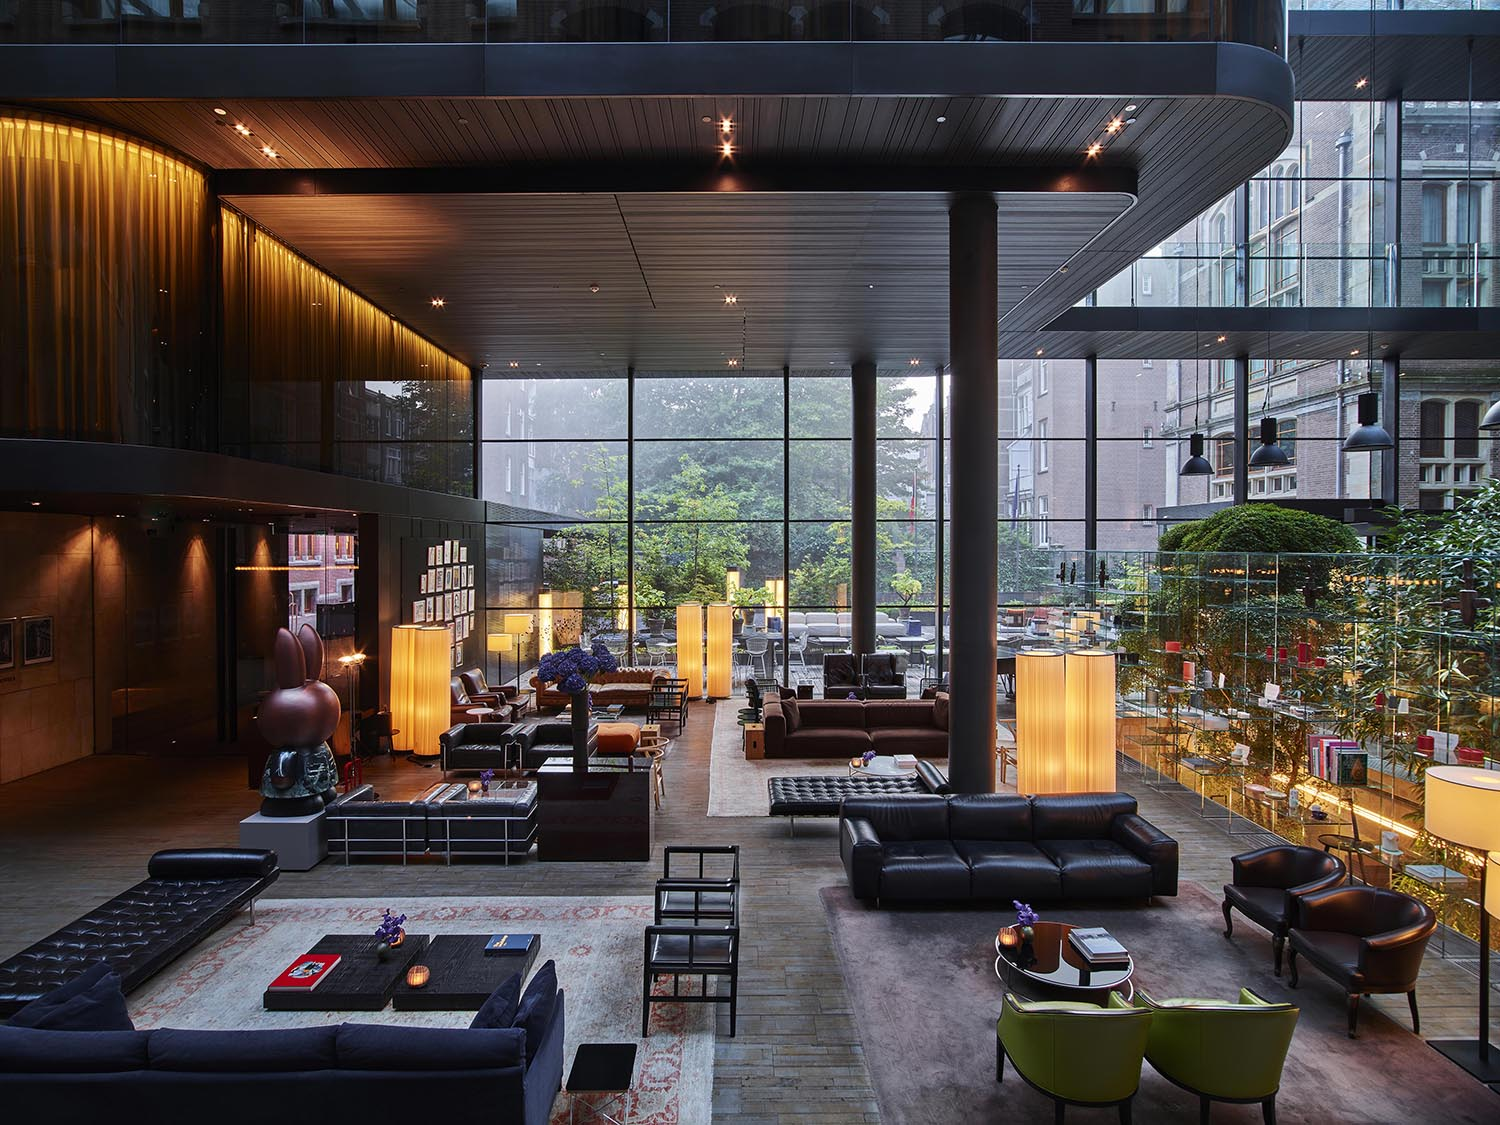 Conservatorium Hotel City Centre Luxury 5 Star Hotel In Amsterdam